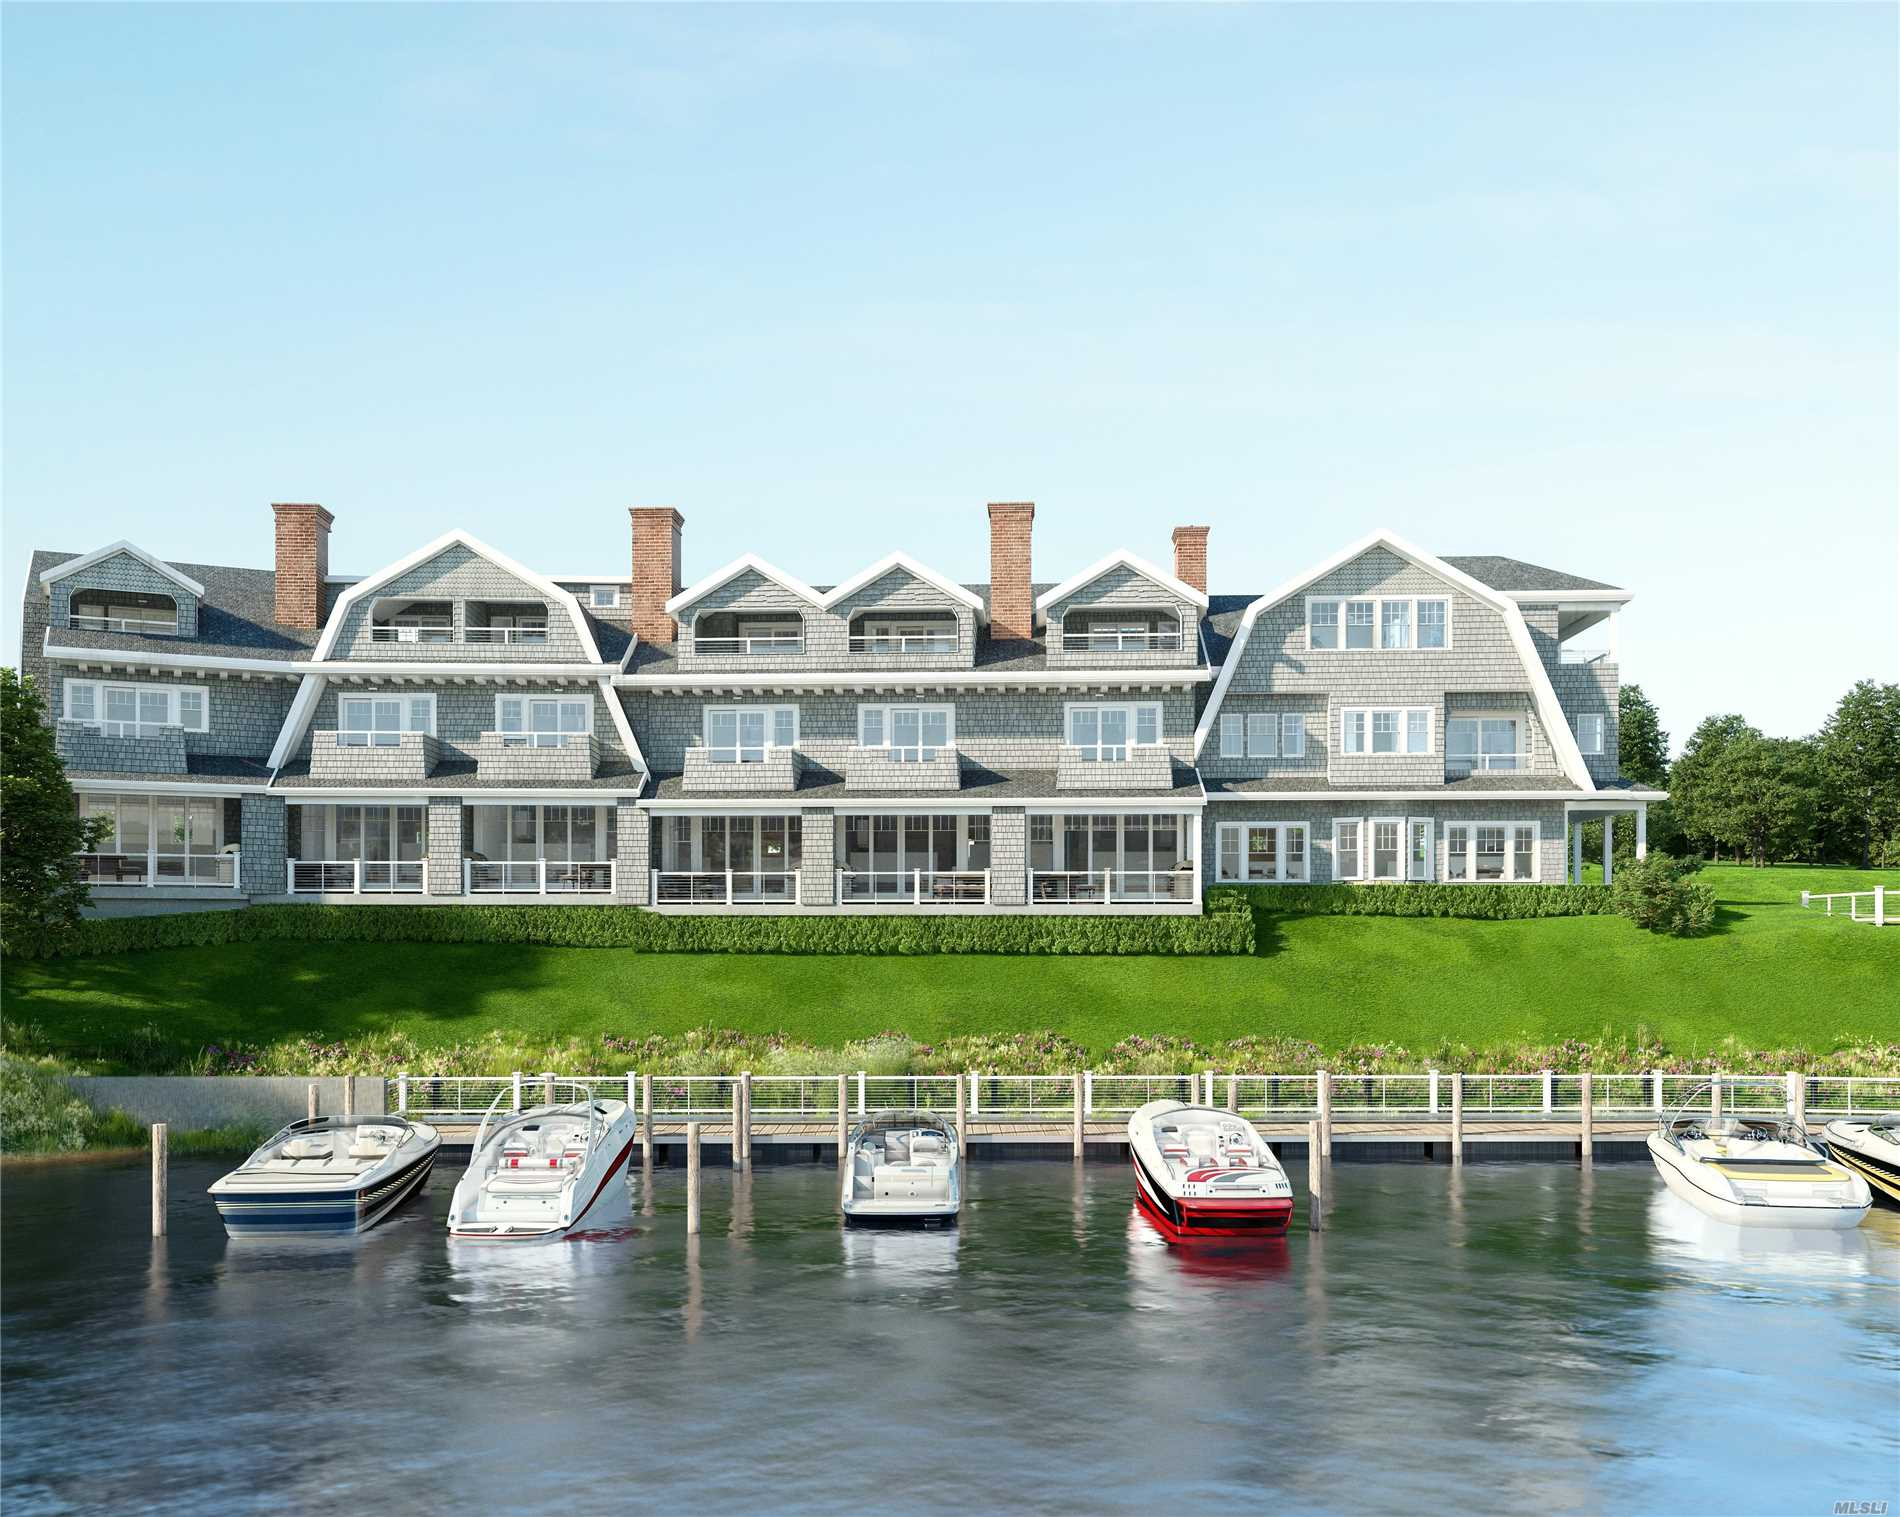 Property for sale at 61 Old Boathouse Lane # 202, Hampton Bays NY 11946, Hampton Bays,  New York 11946